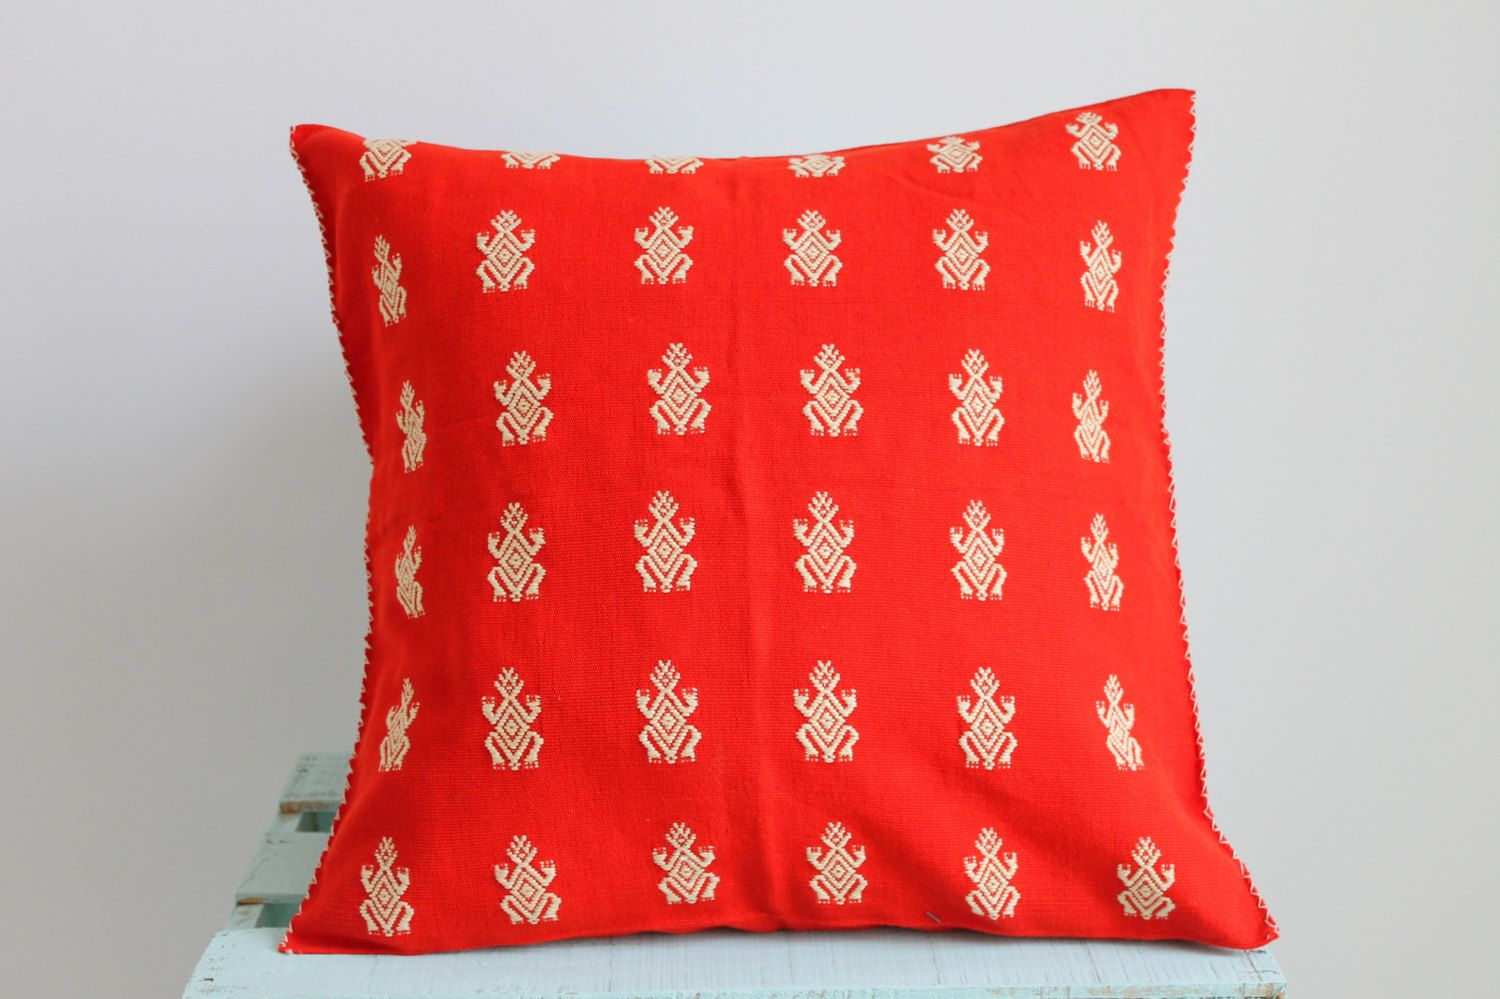 Beautiful hand #embroidered #cushion covers made in #Chiapas   #pillow #mexican #mexicantextiles #embroidered #embroidery #boho #cozy #folk #folklorico #gypsy #casamexicana #decor #homedecor #decoration #ethnic #indigenous #Chiapas